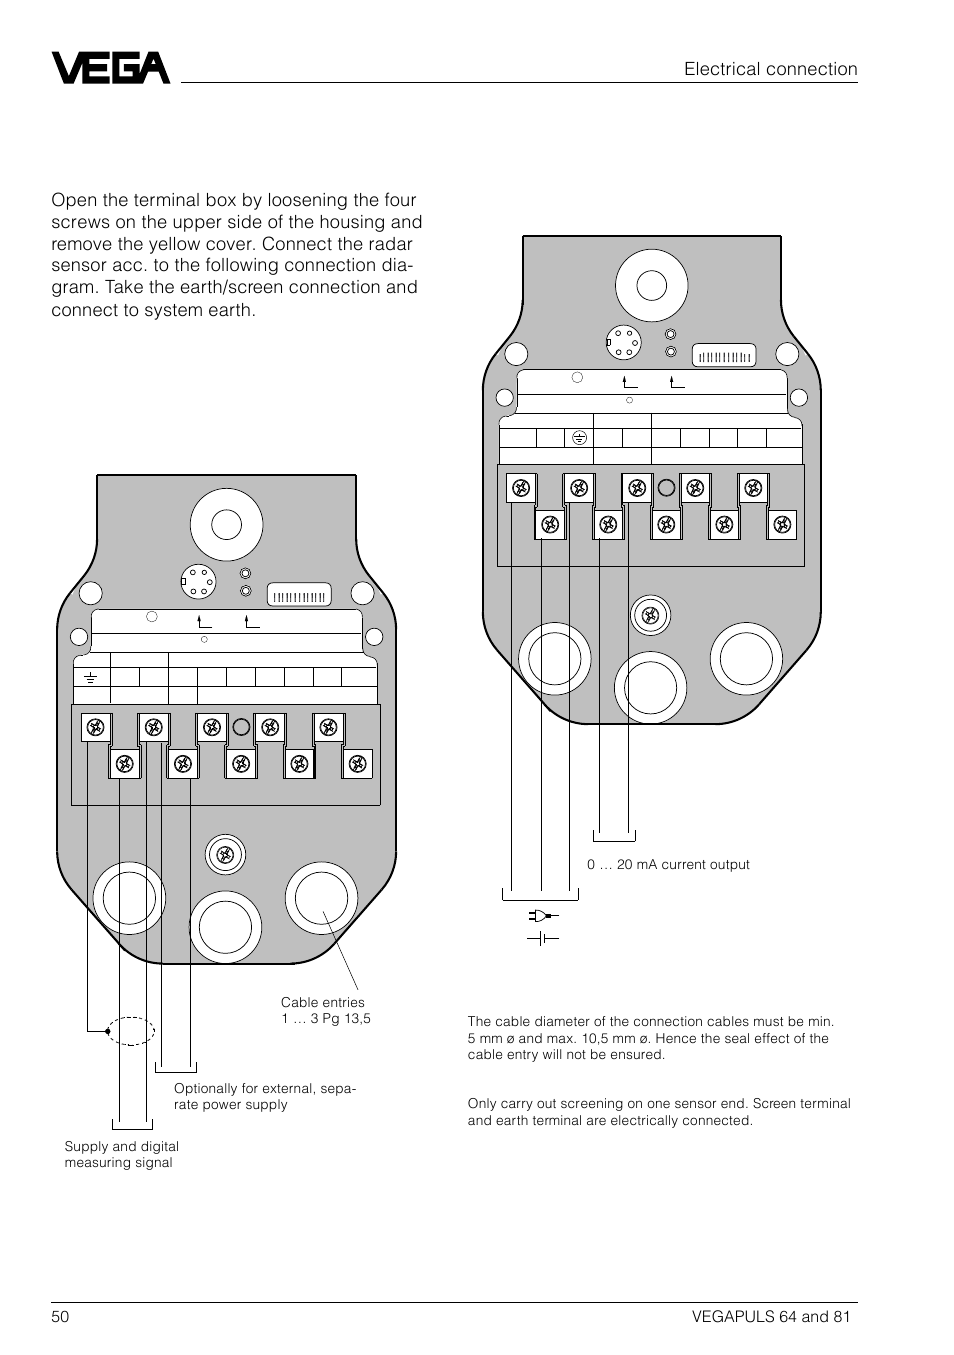 3 Connection Diagrams Of Vegapuls 64 Series Fk Dk Vega Wiring Fv Dv 81 User Manual Page 50 84